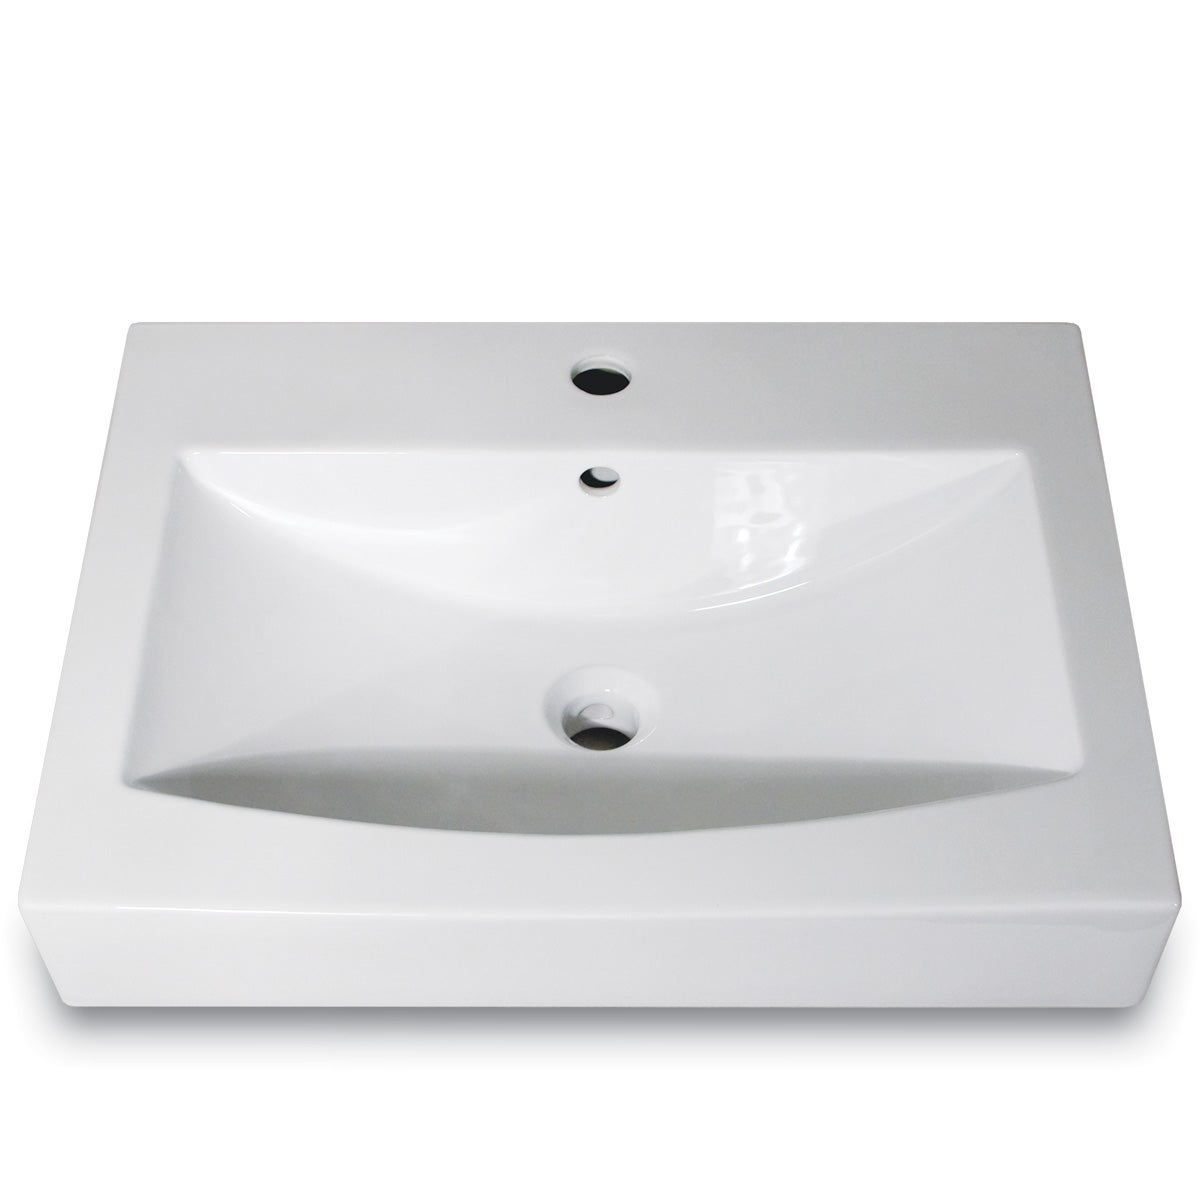 Highpoint Collection Rectangular Vitrious China Vessel Sink